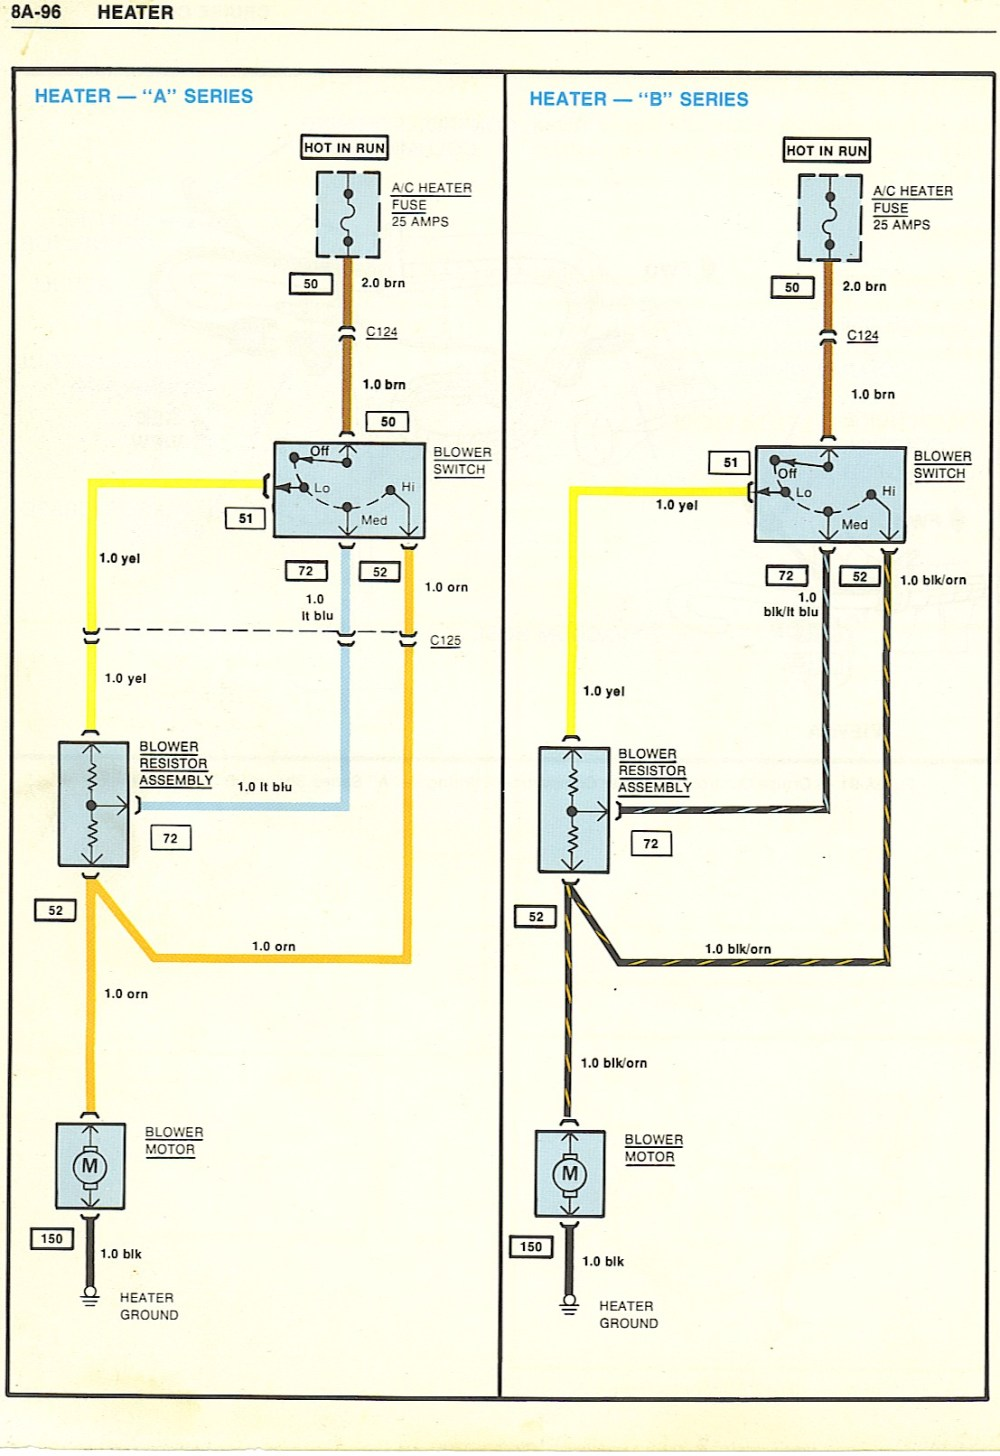 medium resolution of 79 el camino dash wire diagram wiring diagram blog mix wiring diagrams 79 el camino dash